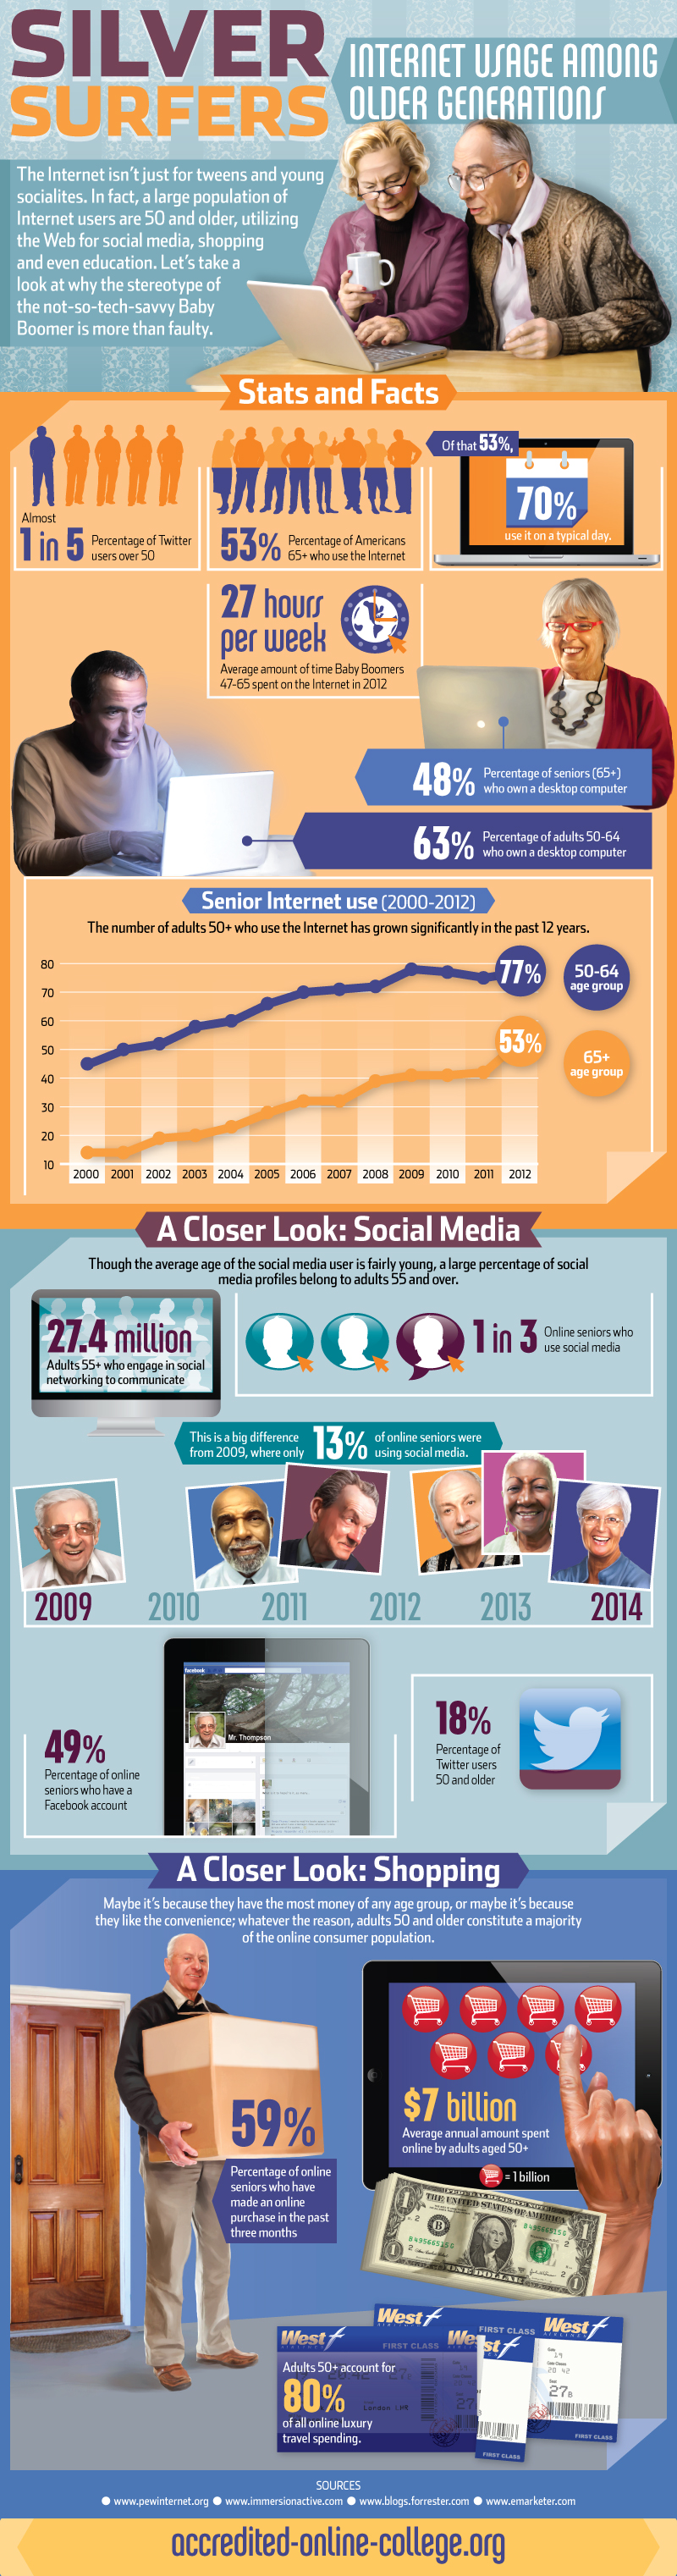 Silver Surfers: Internet Usage Among Older Generations